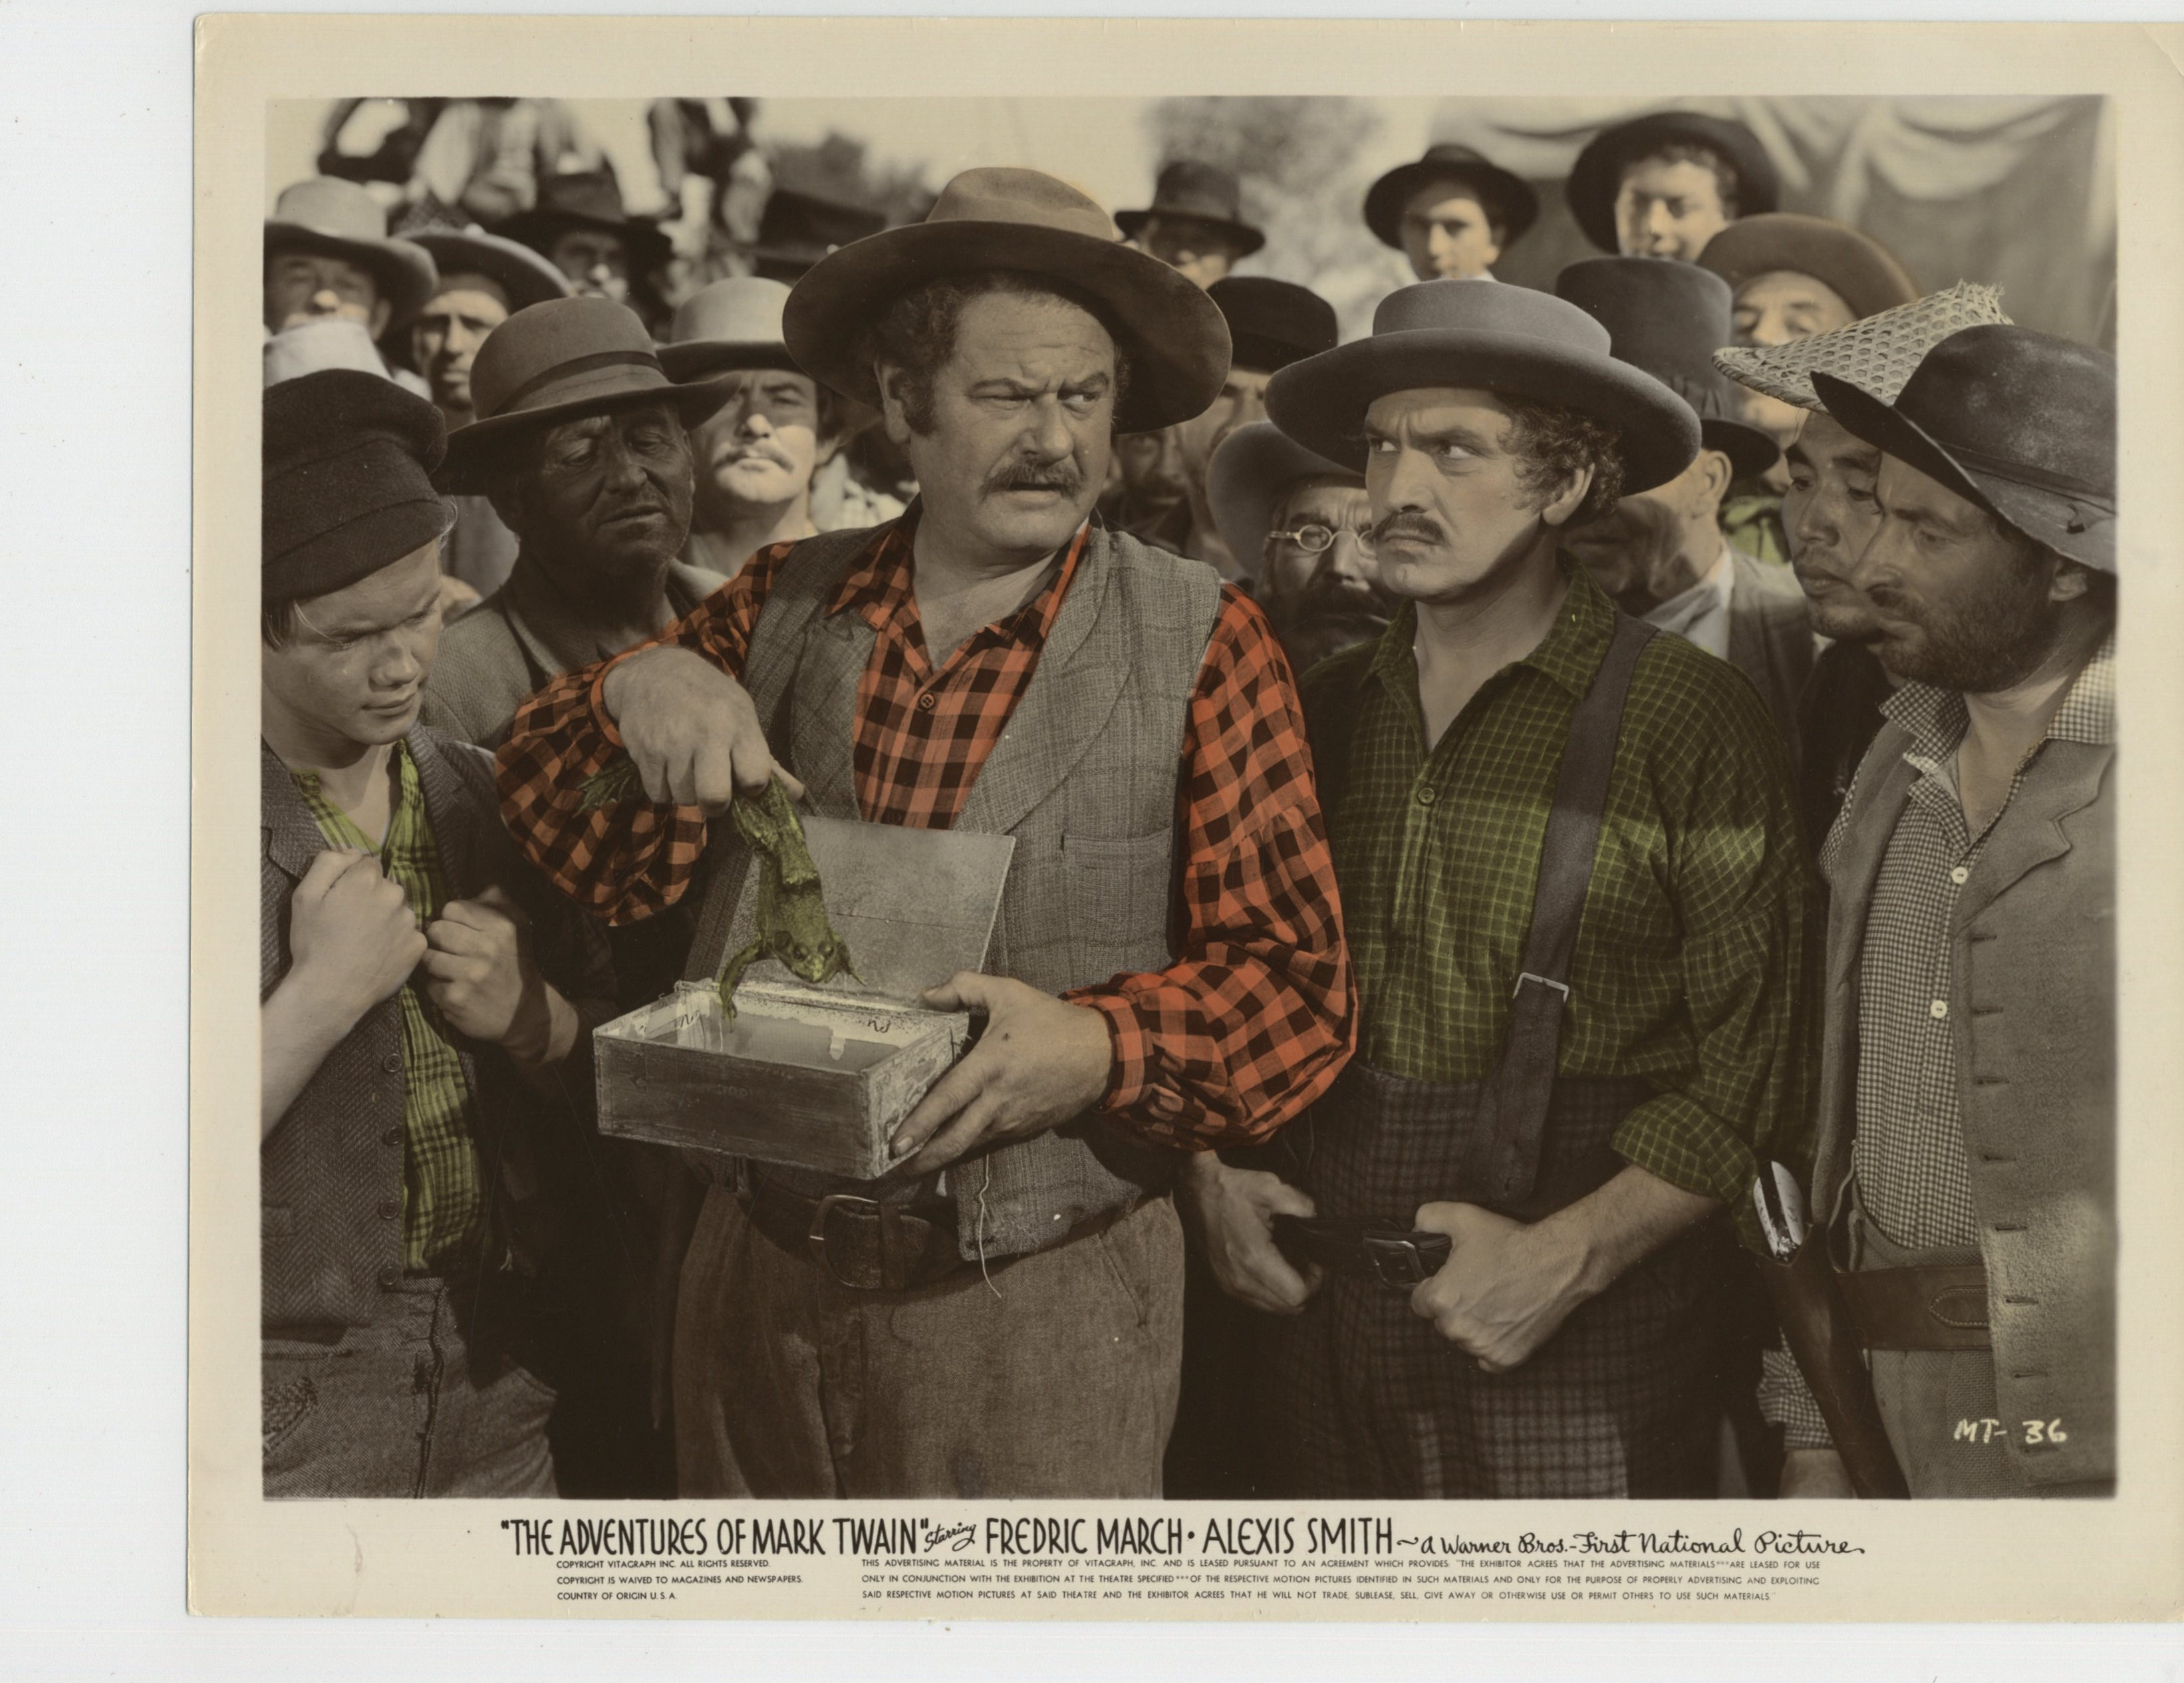 Alan Hale, Henry Blair, Chester Conklin, Willie Fung, George Haywood, Robert Herrick, Gene Holland, Fredric March, Charles McAvoy, and John 'Skins' Miller in The Adventures of Mark Twain (1944)